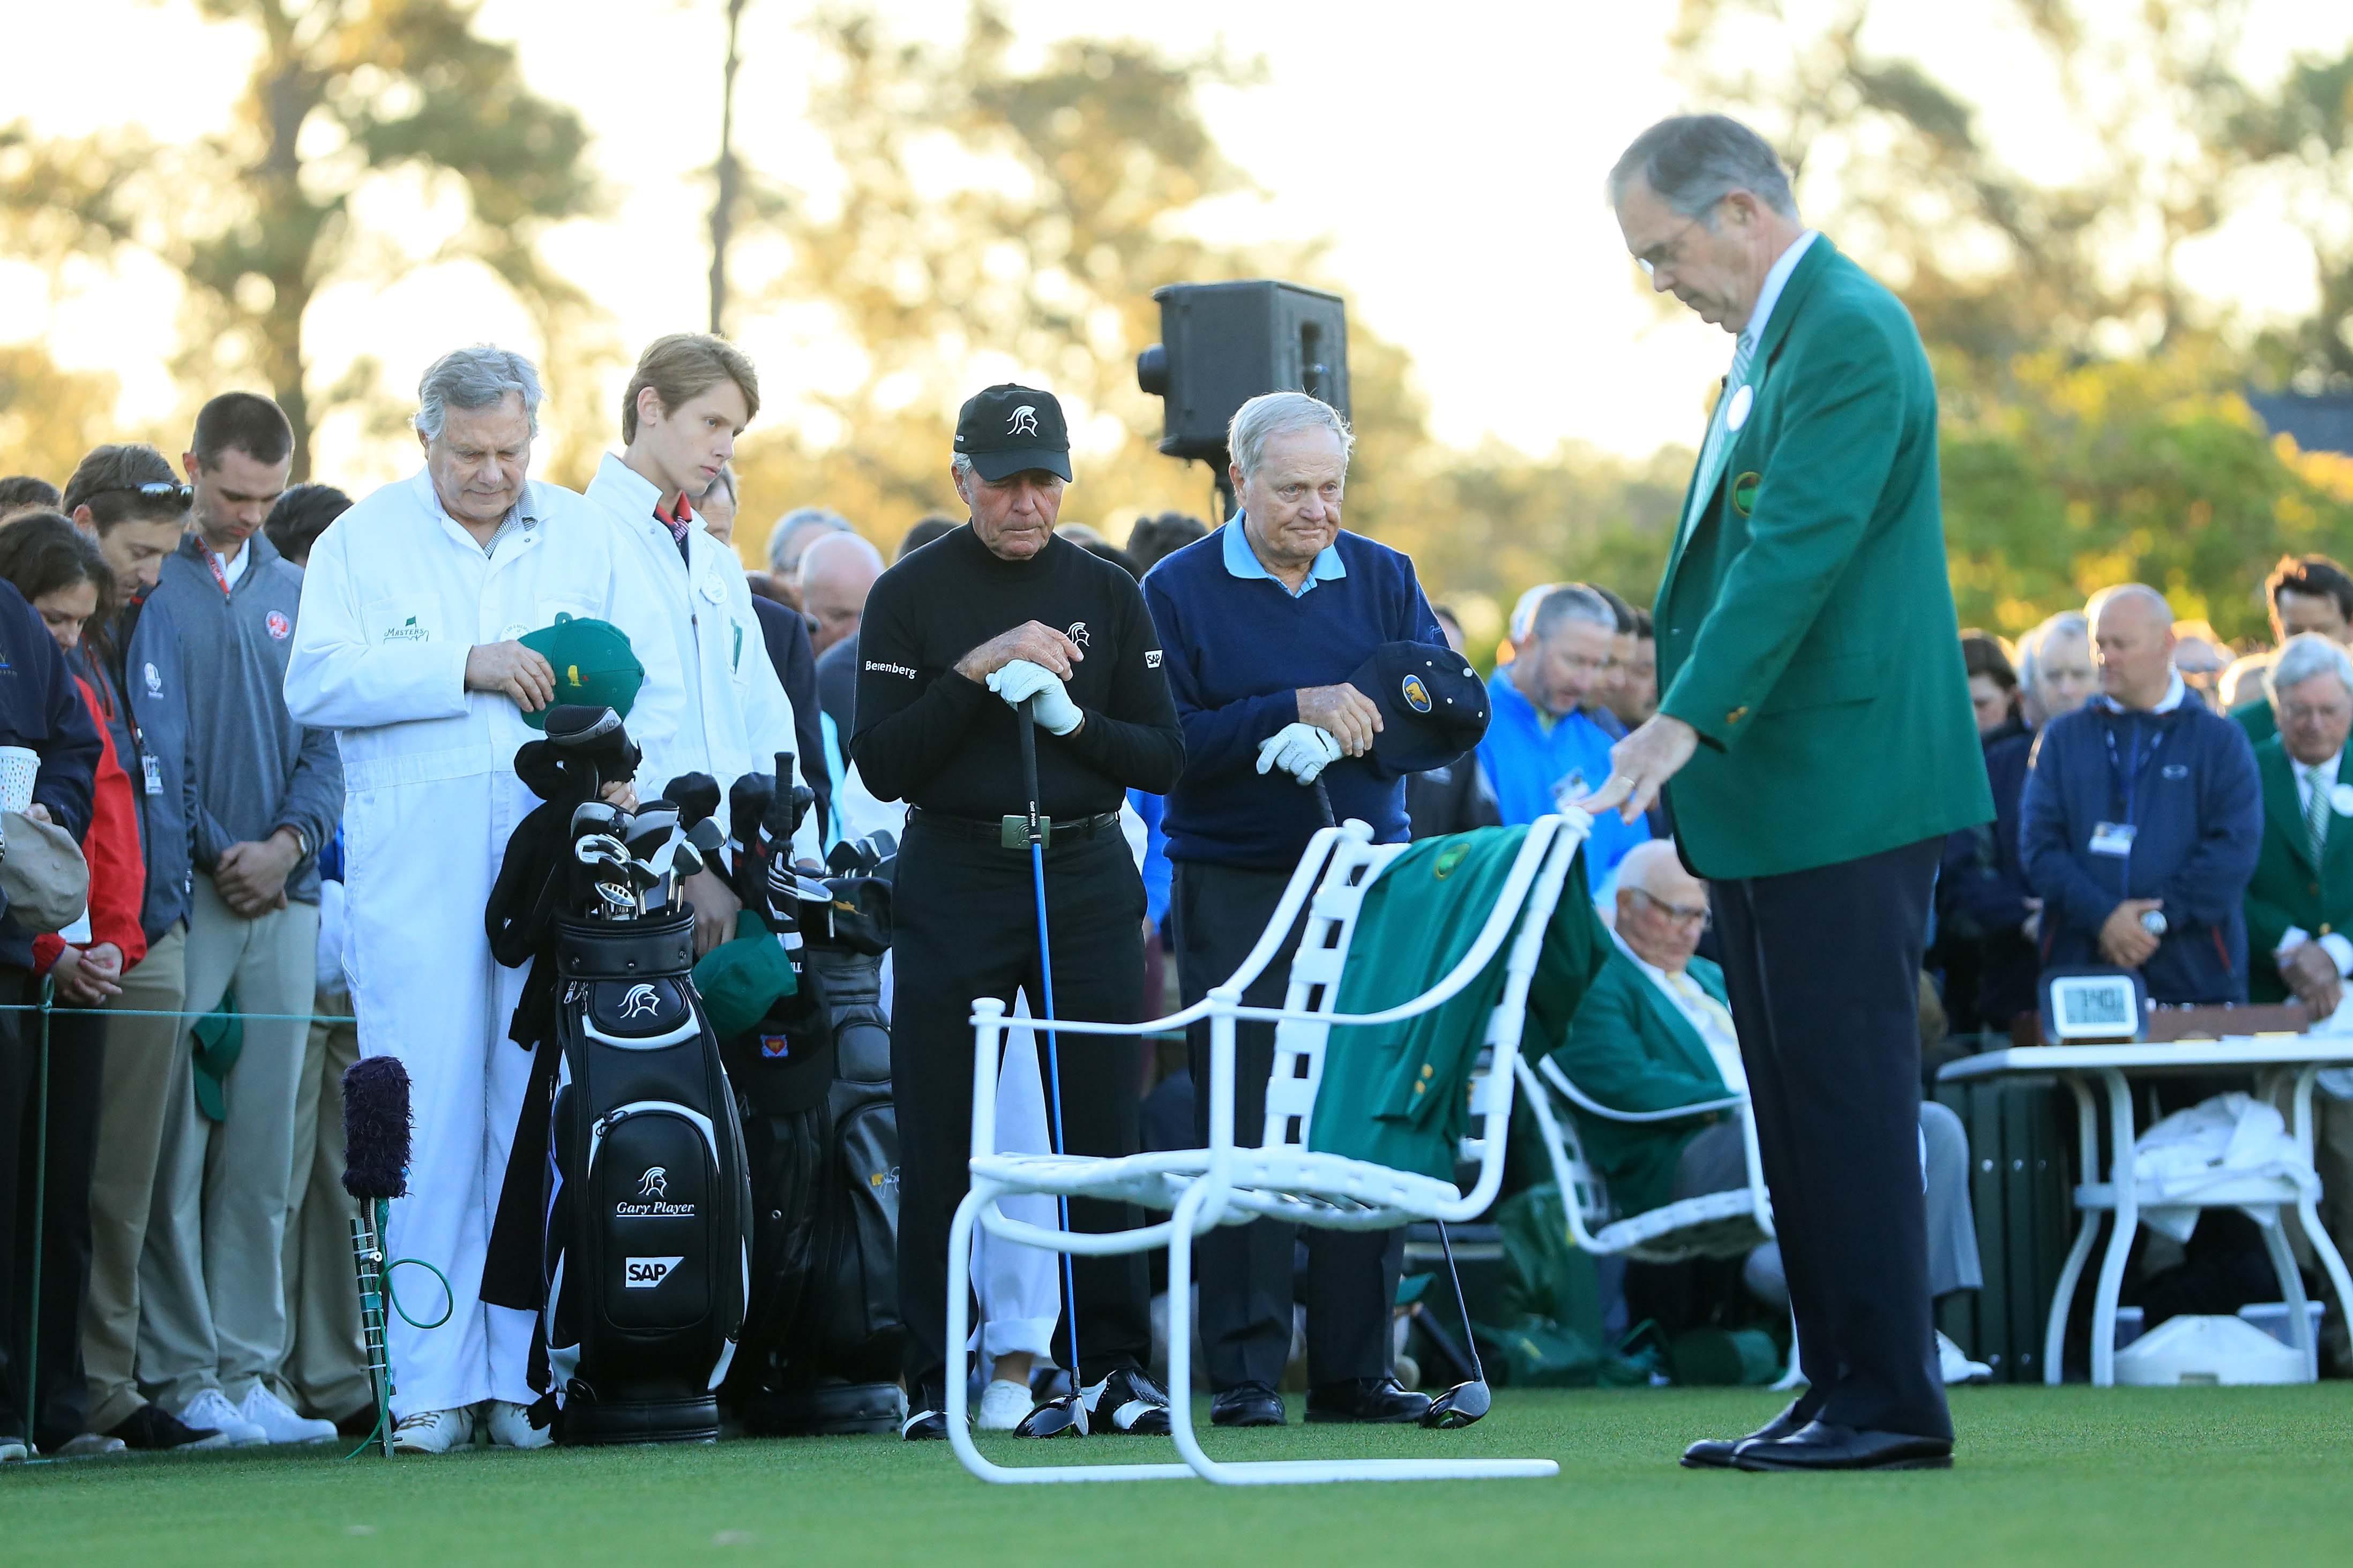 Billy Payne, Gary Player and Jack Nicklaus